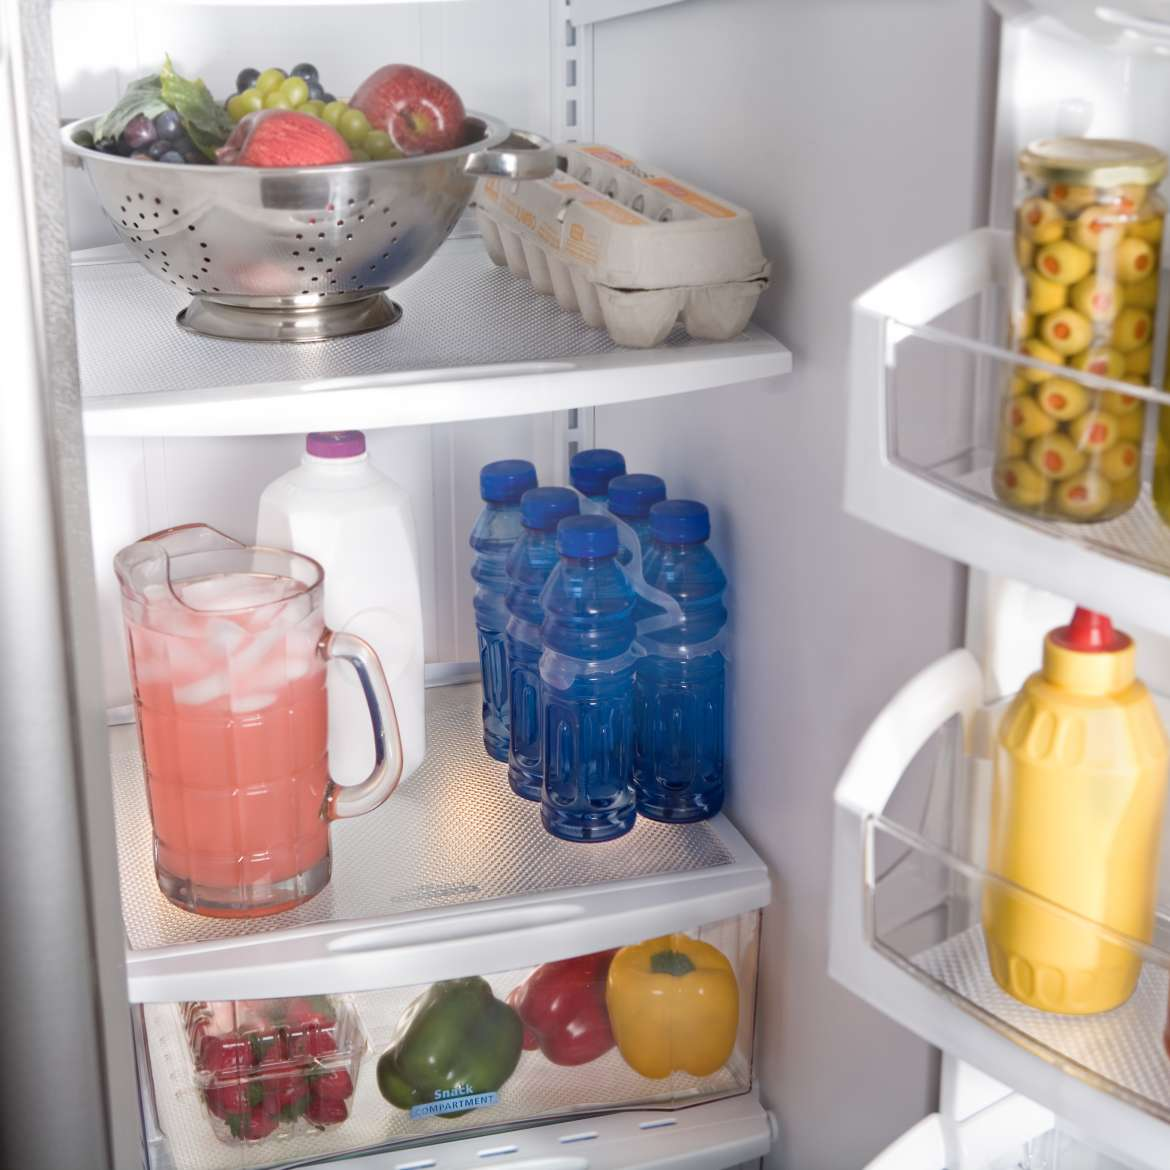 Clear Classic™ Easy Liner® Refrigerator Liner